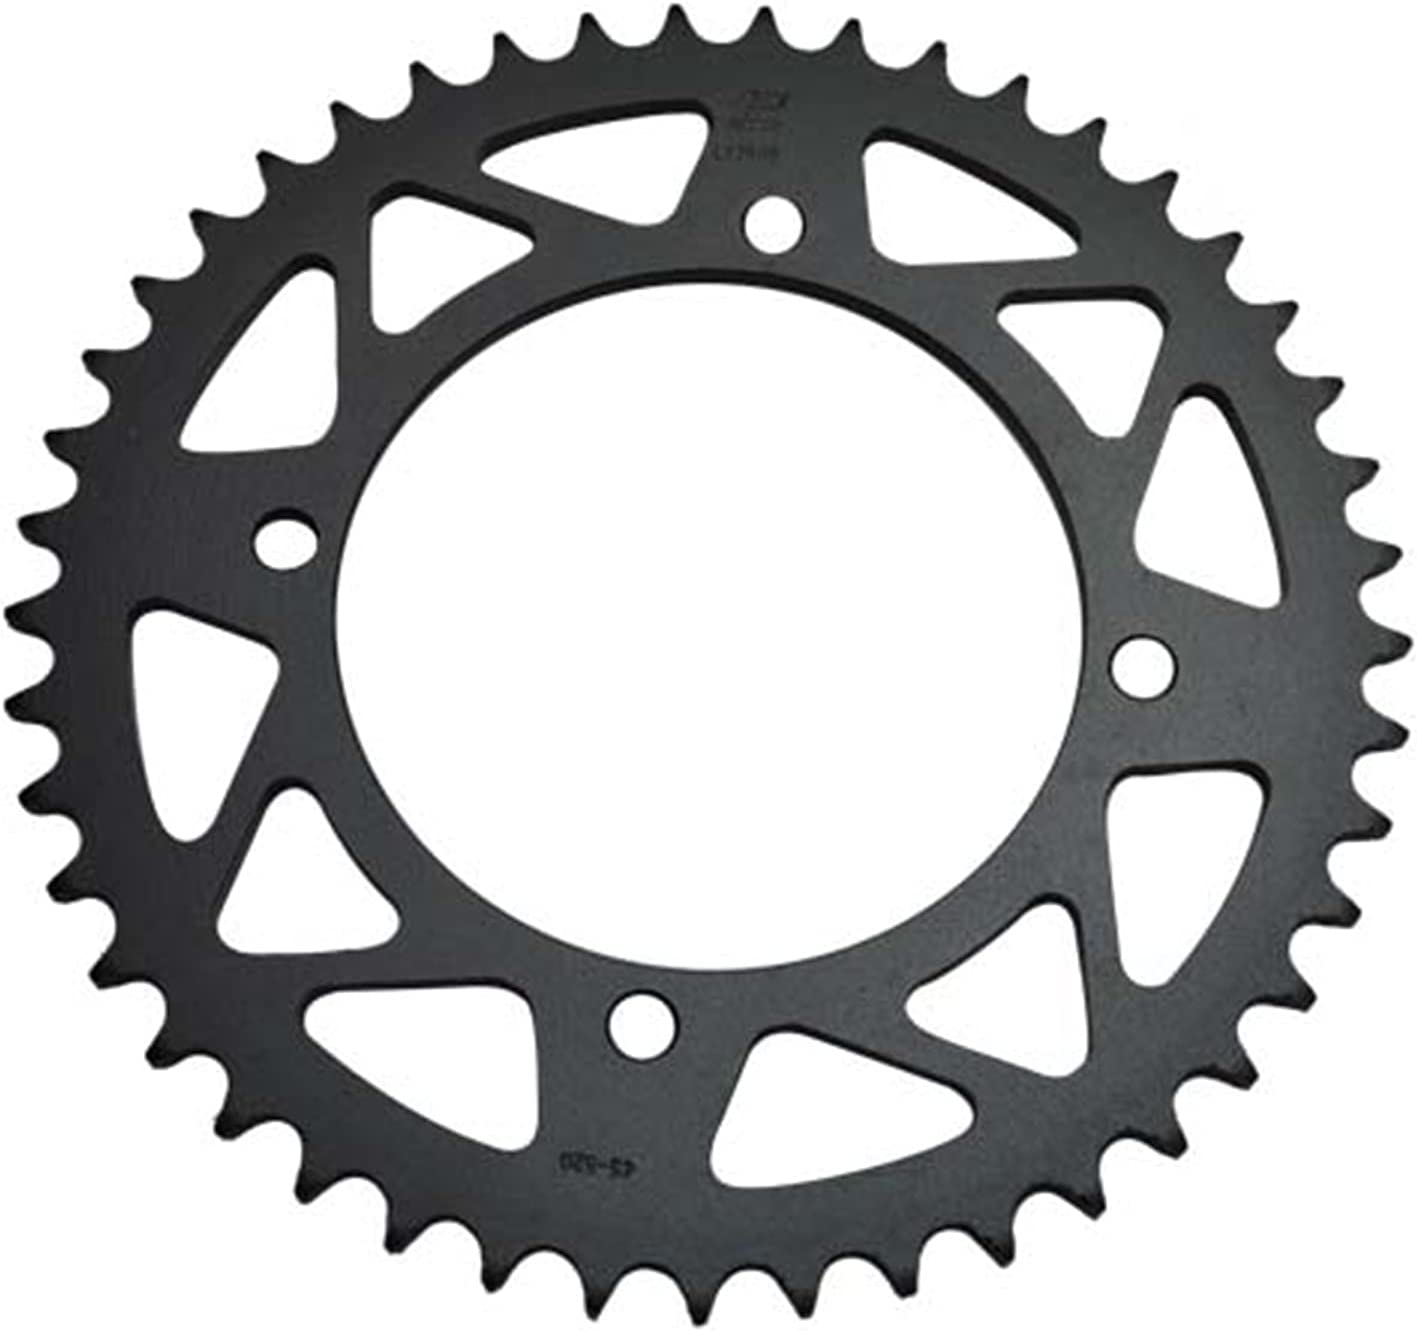 HDBH Rear Sprocket 2021 new 520 Motorcycle Chain Popularity Suitable f